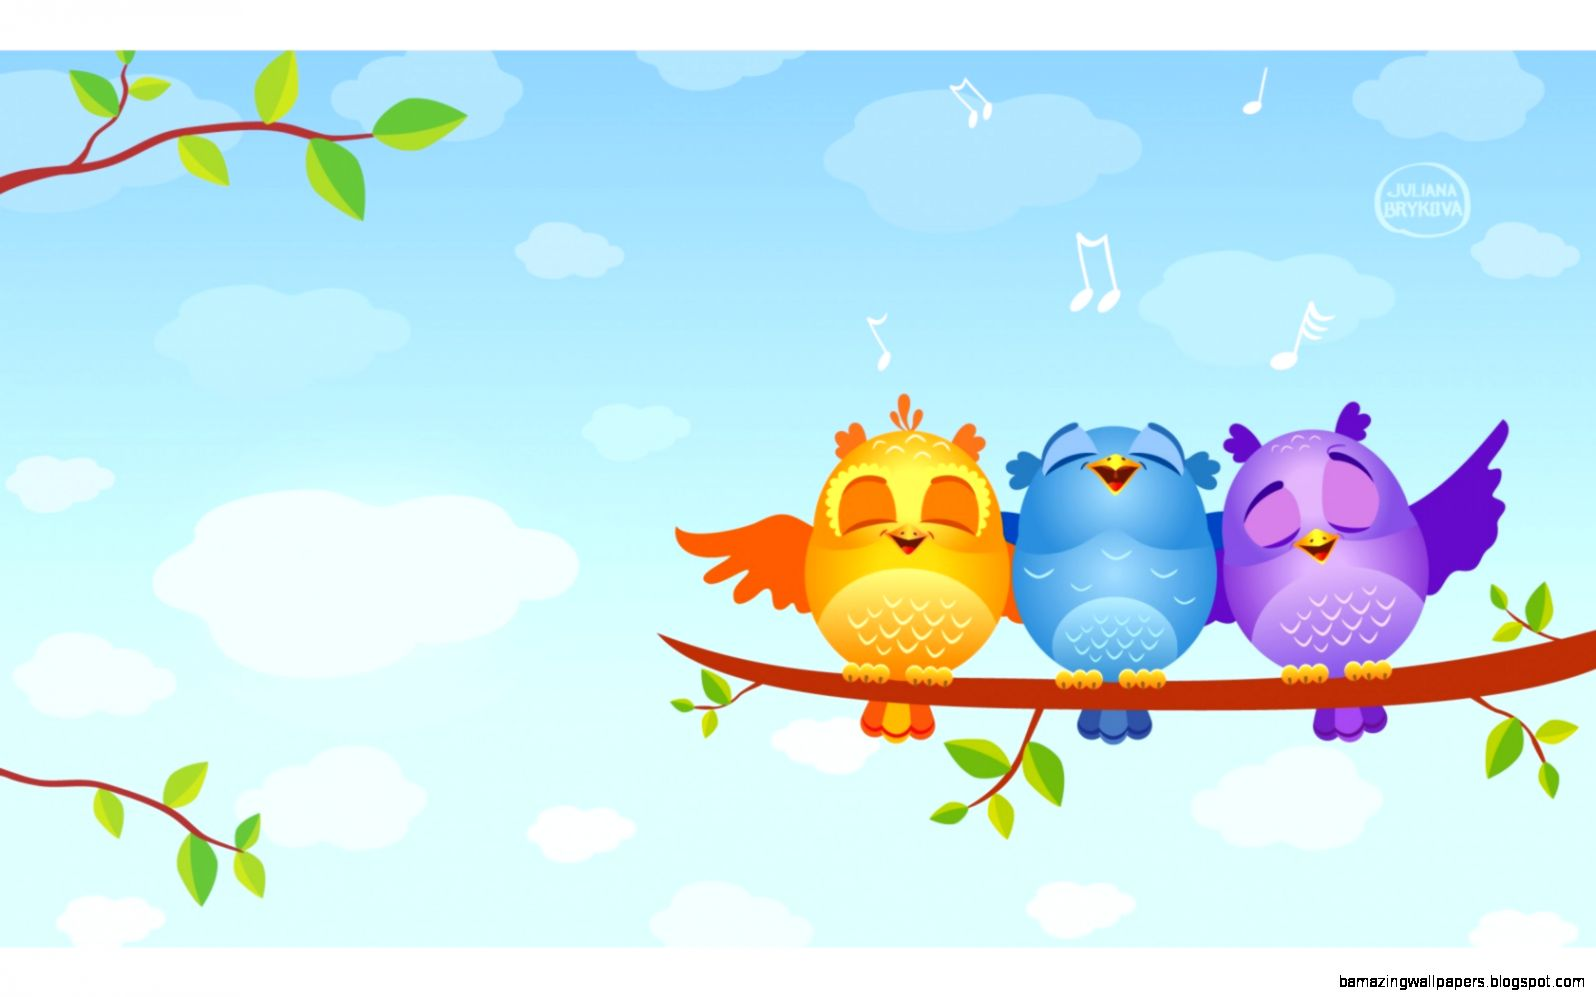 wallpaper musical birds animated tree branch leaves